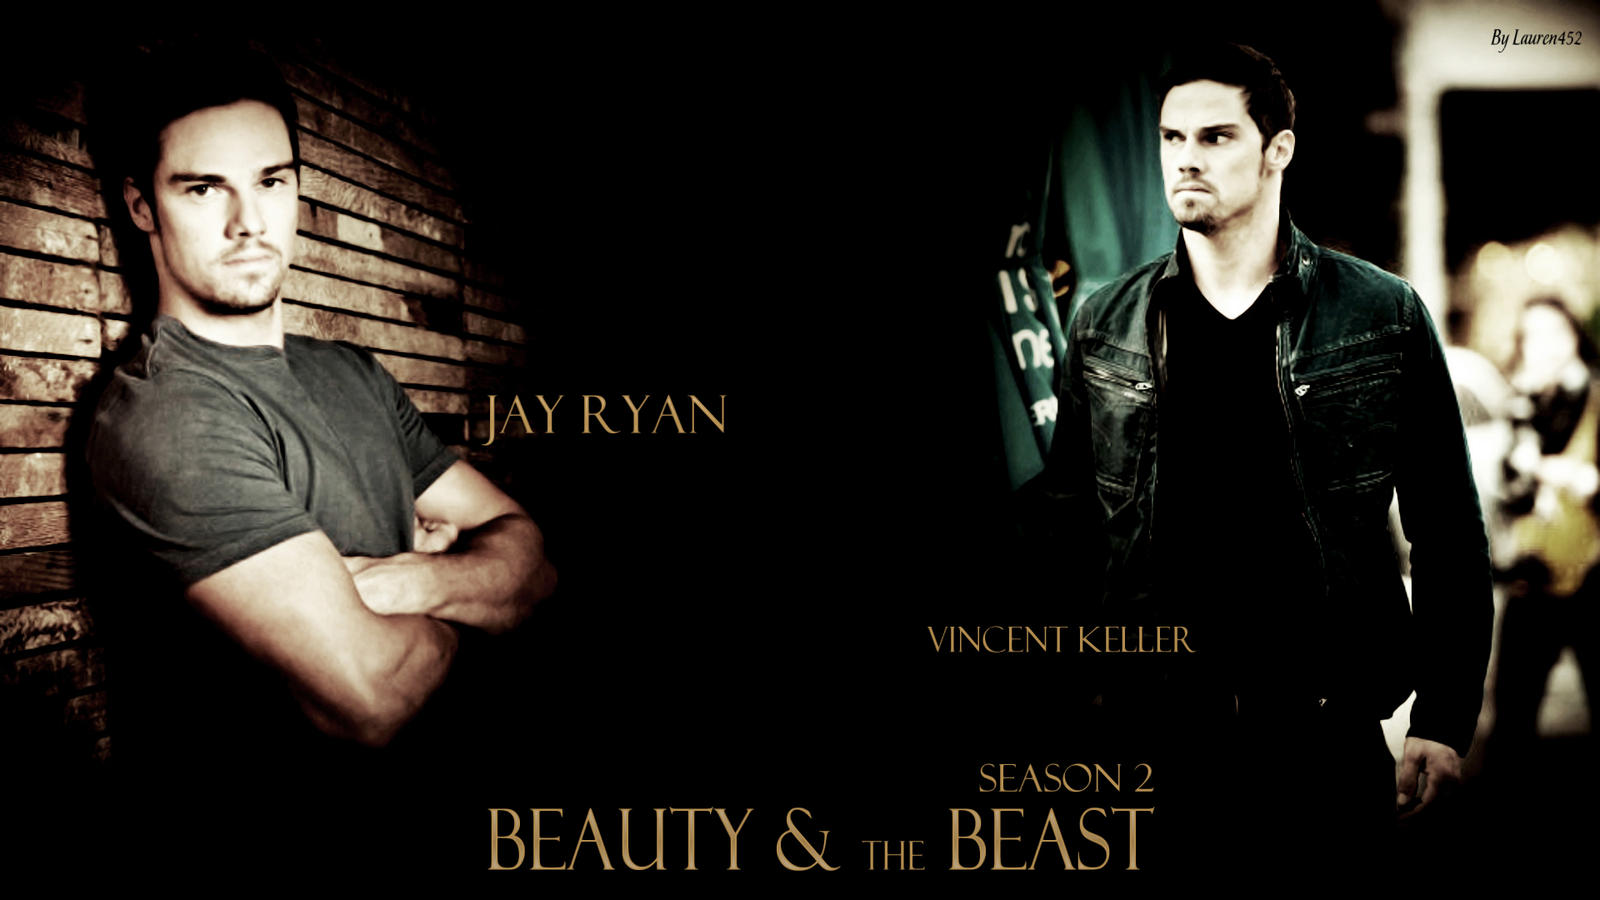 Jay Ryan Vincent Keller By Lauren452